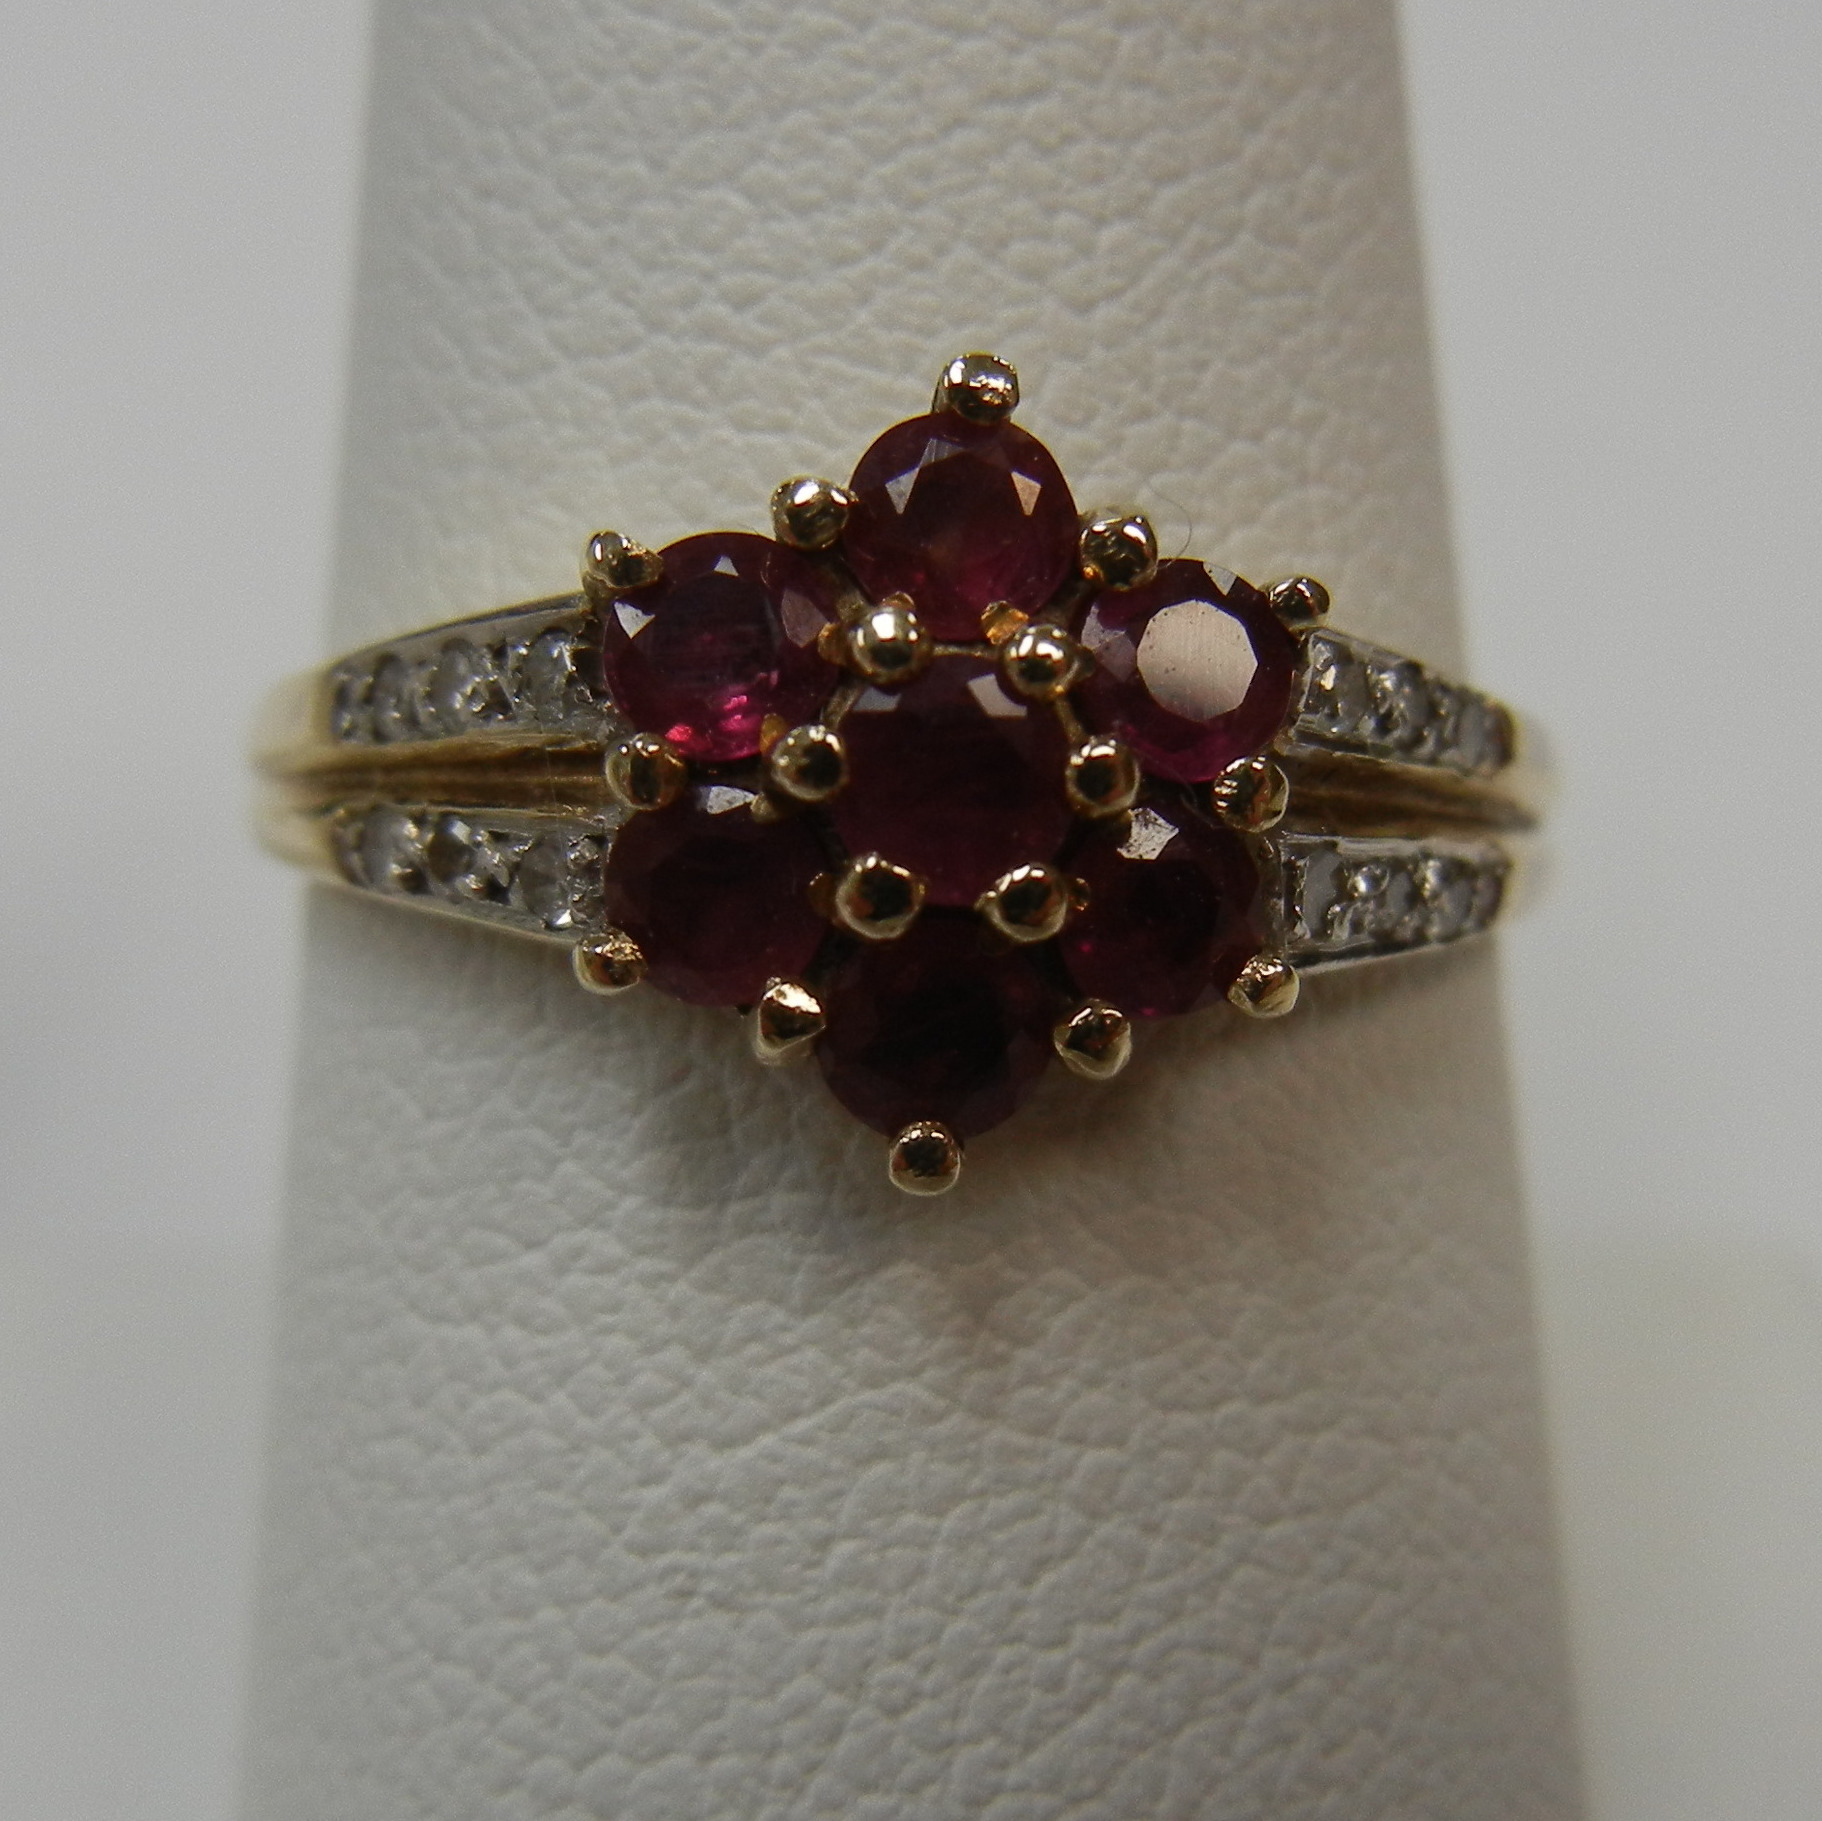 10 KT TWO TONE GOLD RED STONE IN SHAPE OF FLOWER RING - SIZE 7